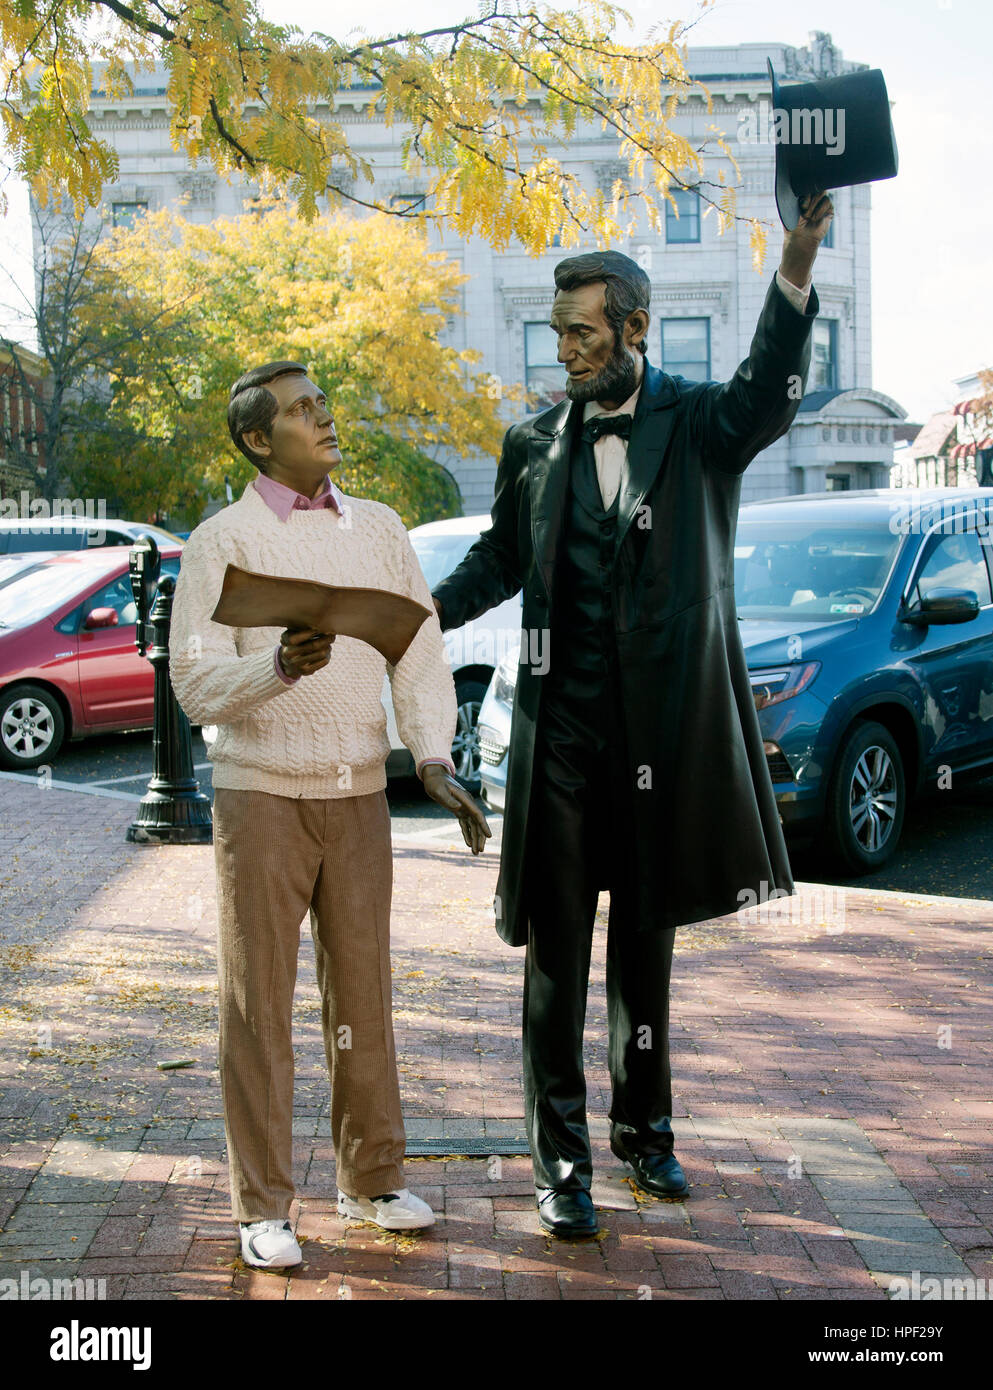 Bronze statues of President Abraham Lincoln and what appears to be an awestruck Perry Como in Gettysburg Pennsylvania - Stock Image